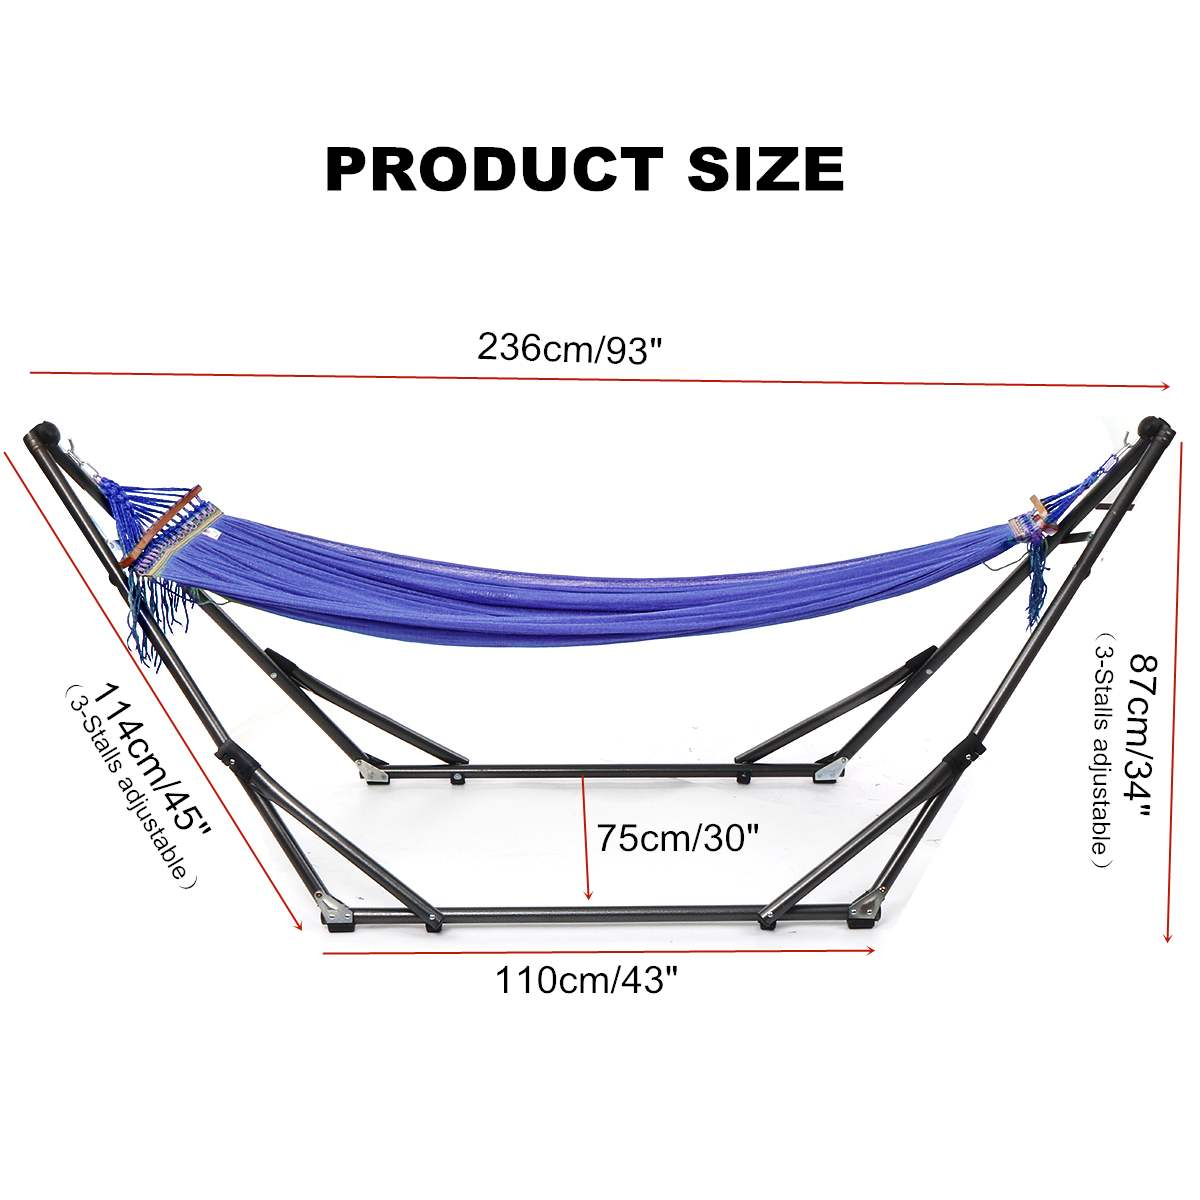 Folding Hammock Stand Bag Set 250KG Portable Steel Pipe Sleeping Swing Garden Outdoor Furniture Hunting Camping Accessories Kit - 5